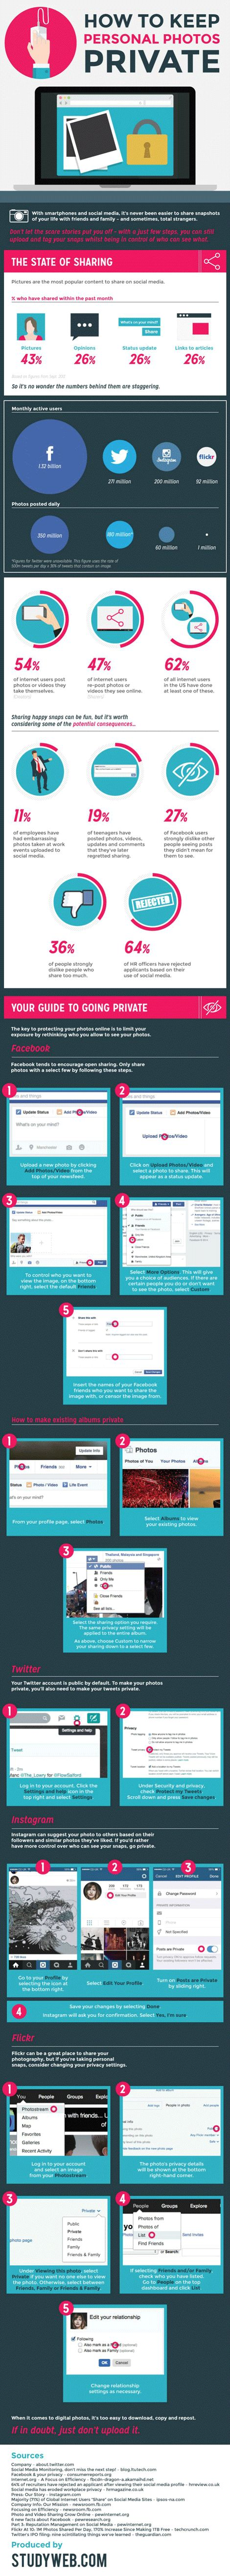 How to Keep Personal Photos Private on Facebook, Twitter & More [Infographic], via @HubSpot